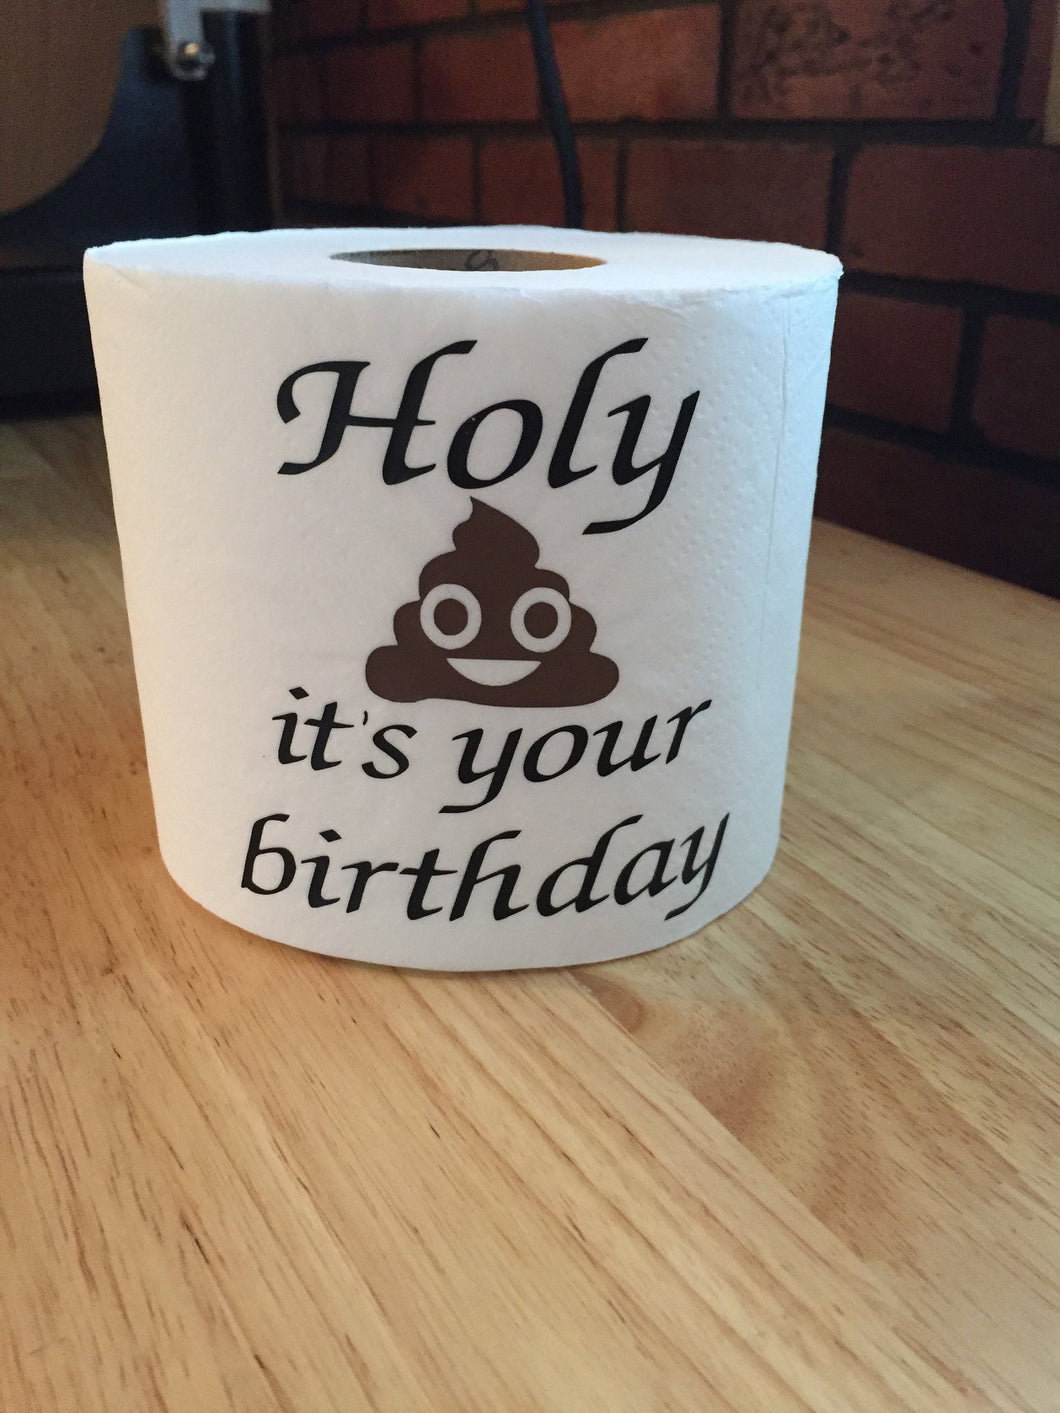 Funny Birthday Gift, Birthday Gift Funny, Gift Funny Birthday, Funny Friend Birthday Gift, Funny Birthday Gift Ideas